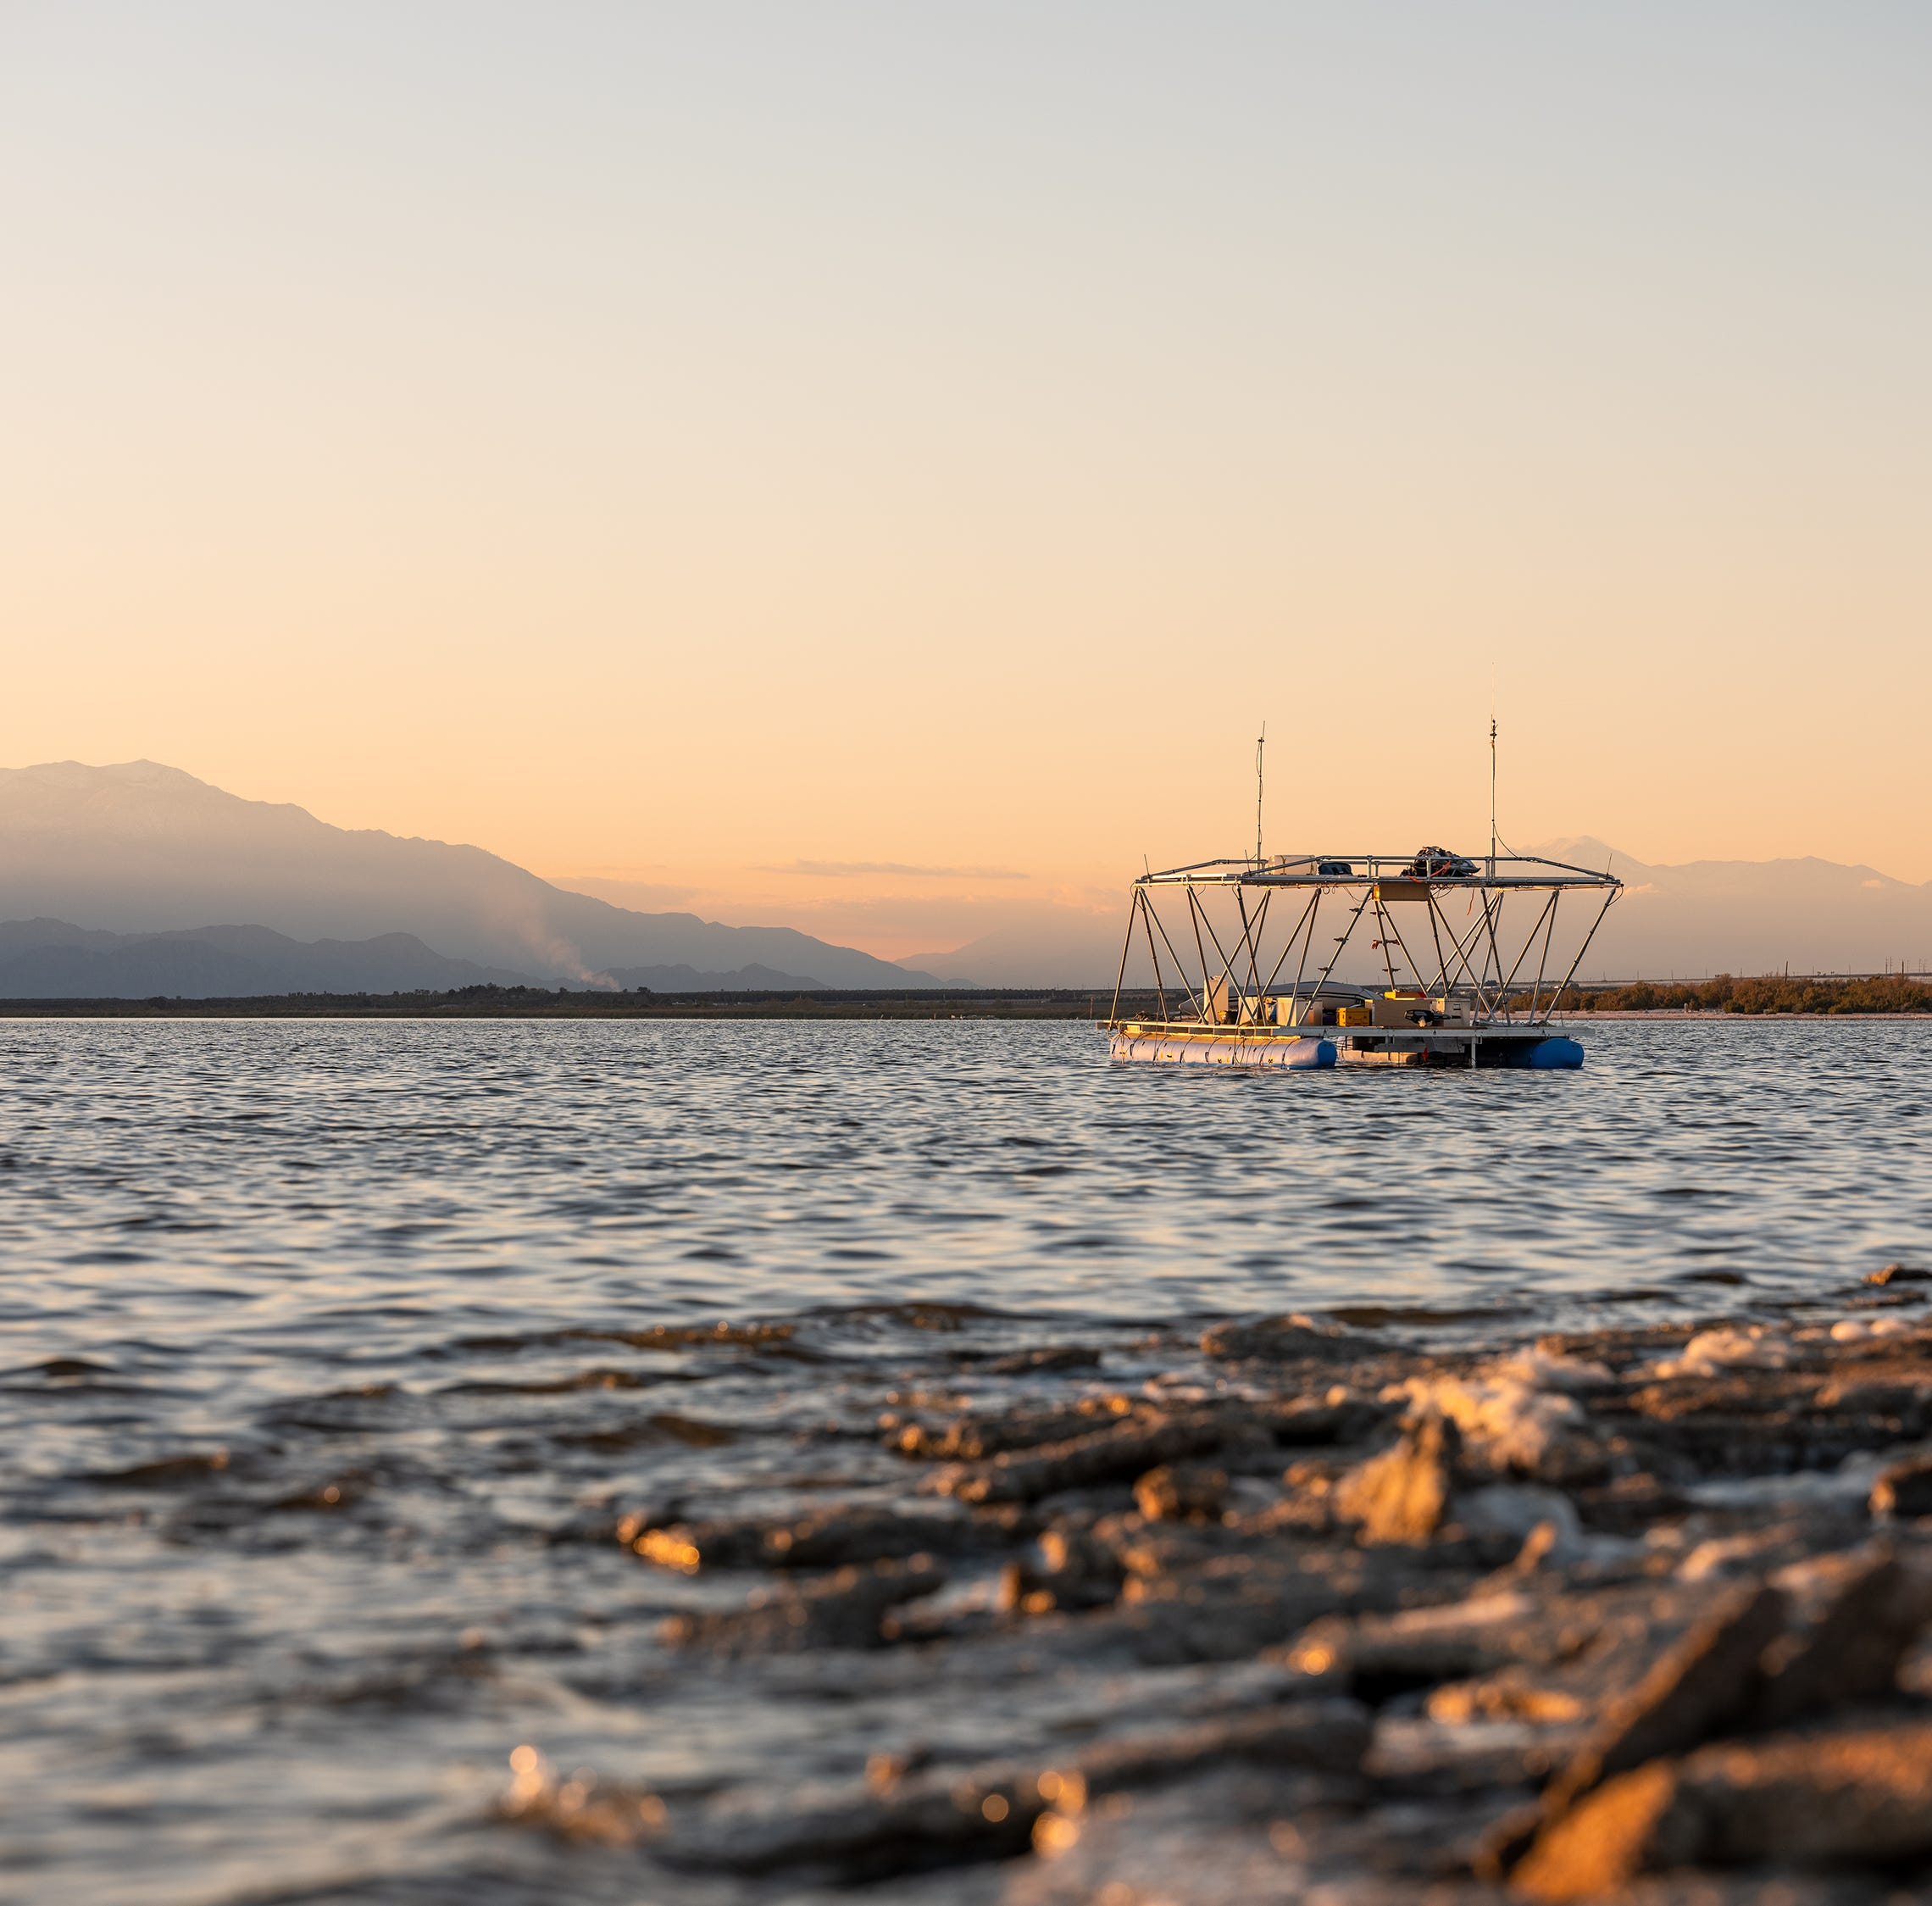 Desert X 2019: Five installations to view at the Salton Sea